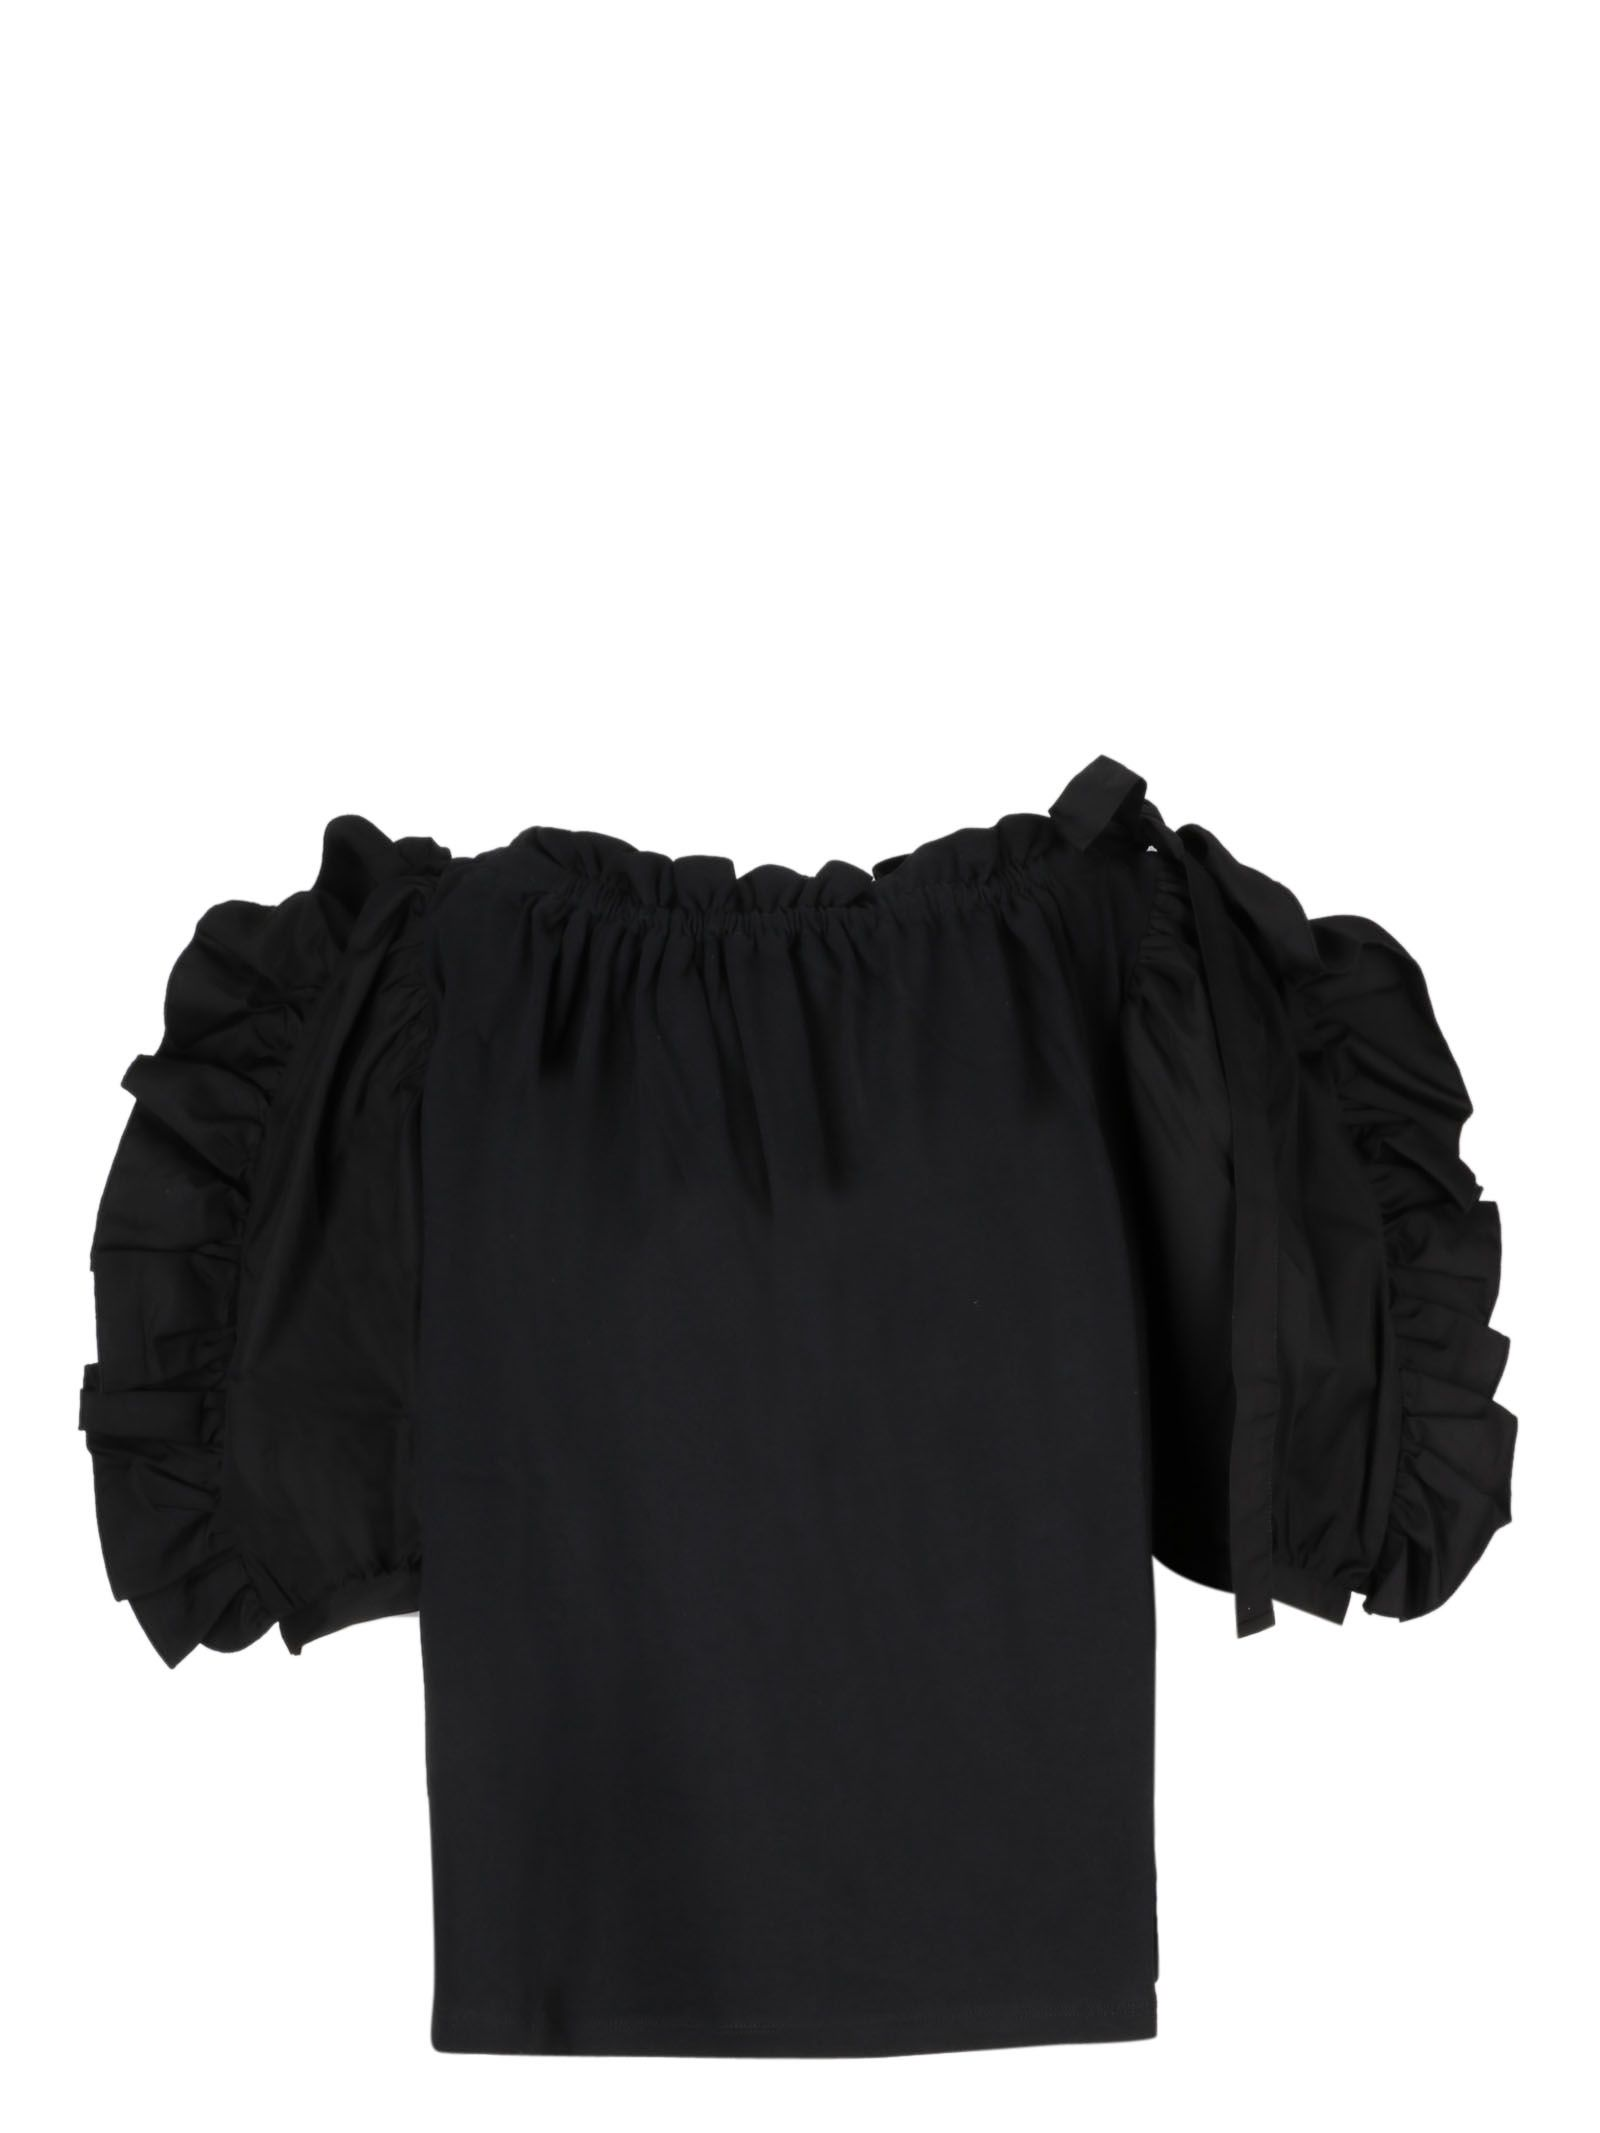 See by Chloé | See By Chloe Ruffled Blouse | Clouty